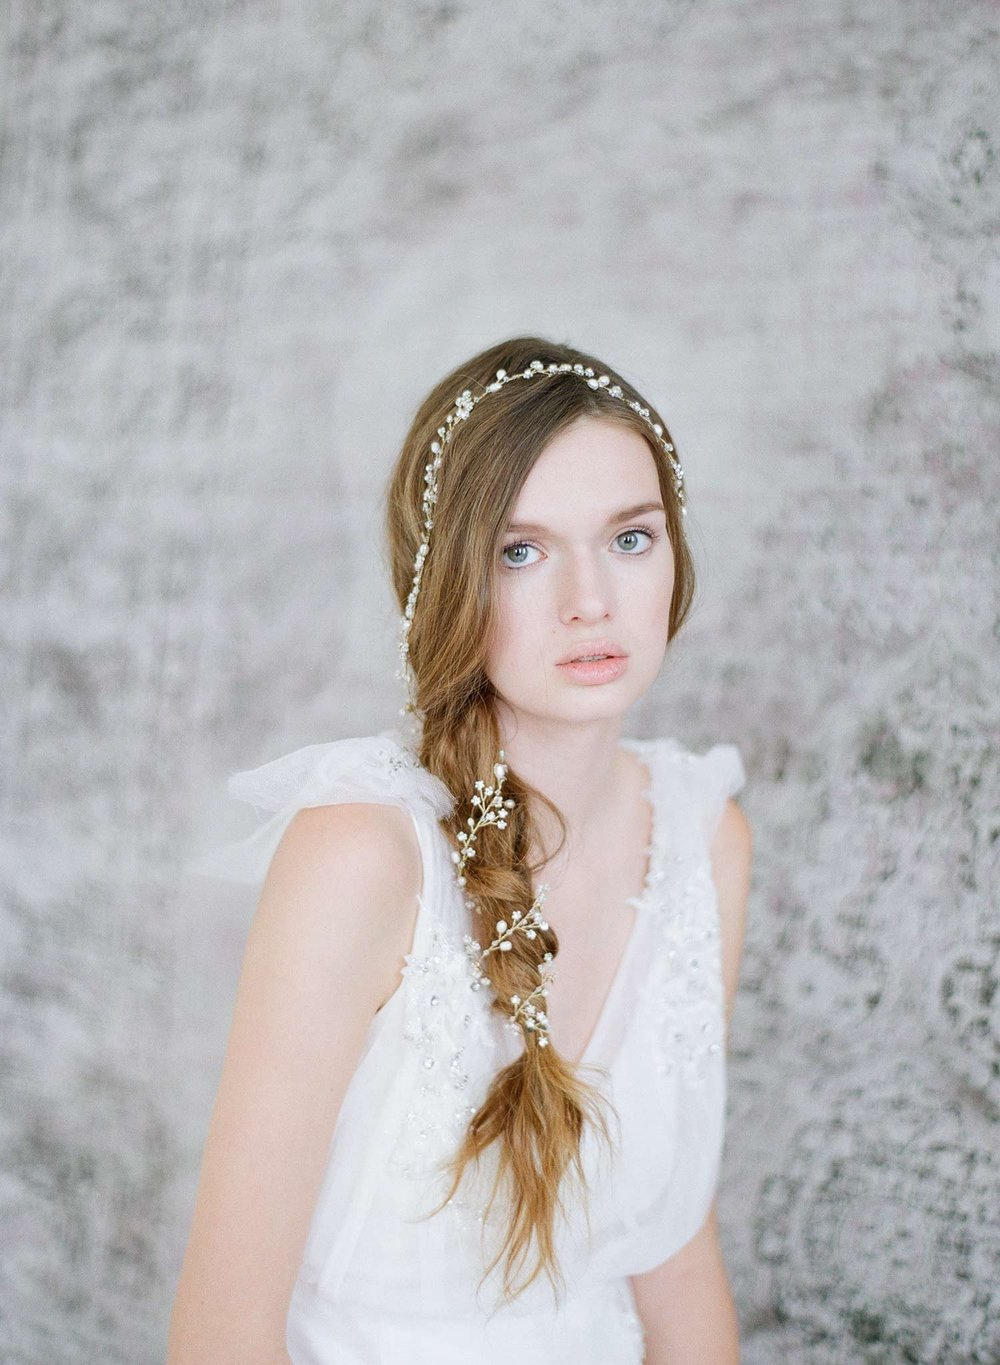 703o_twigs-and-honey-wedding-hair-accessories-bridal-hair-vine-MAIN.jpg